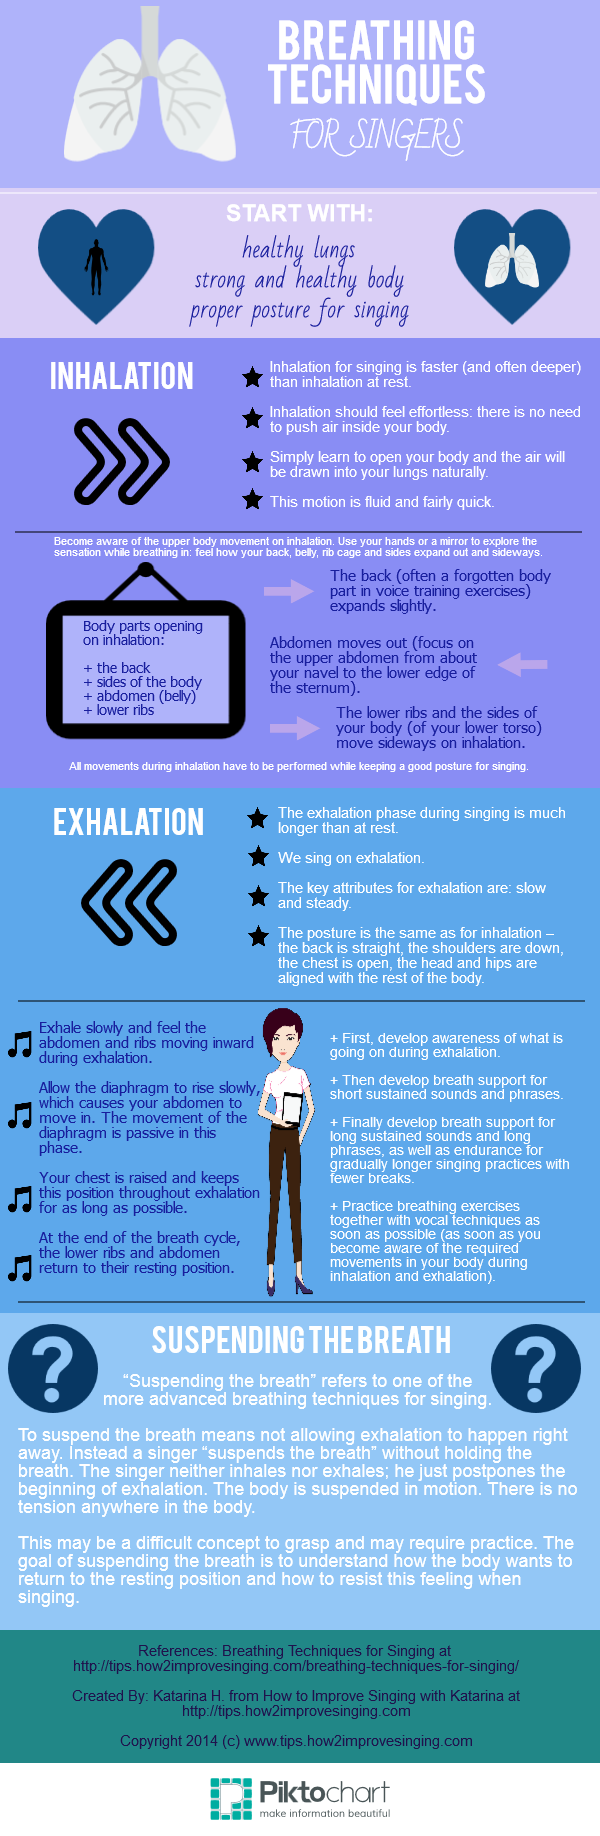 Every singer knows how important breathing is for singing but only a few devote their time to developing controlled breath support. Read more here: http://tips.how2improvesinging.com/vocal-techniques/breathing-techniques-singers-infographic/